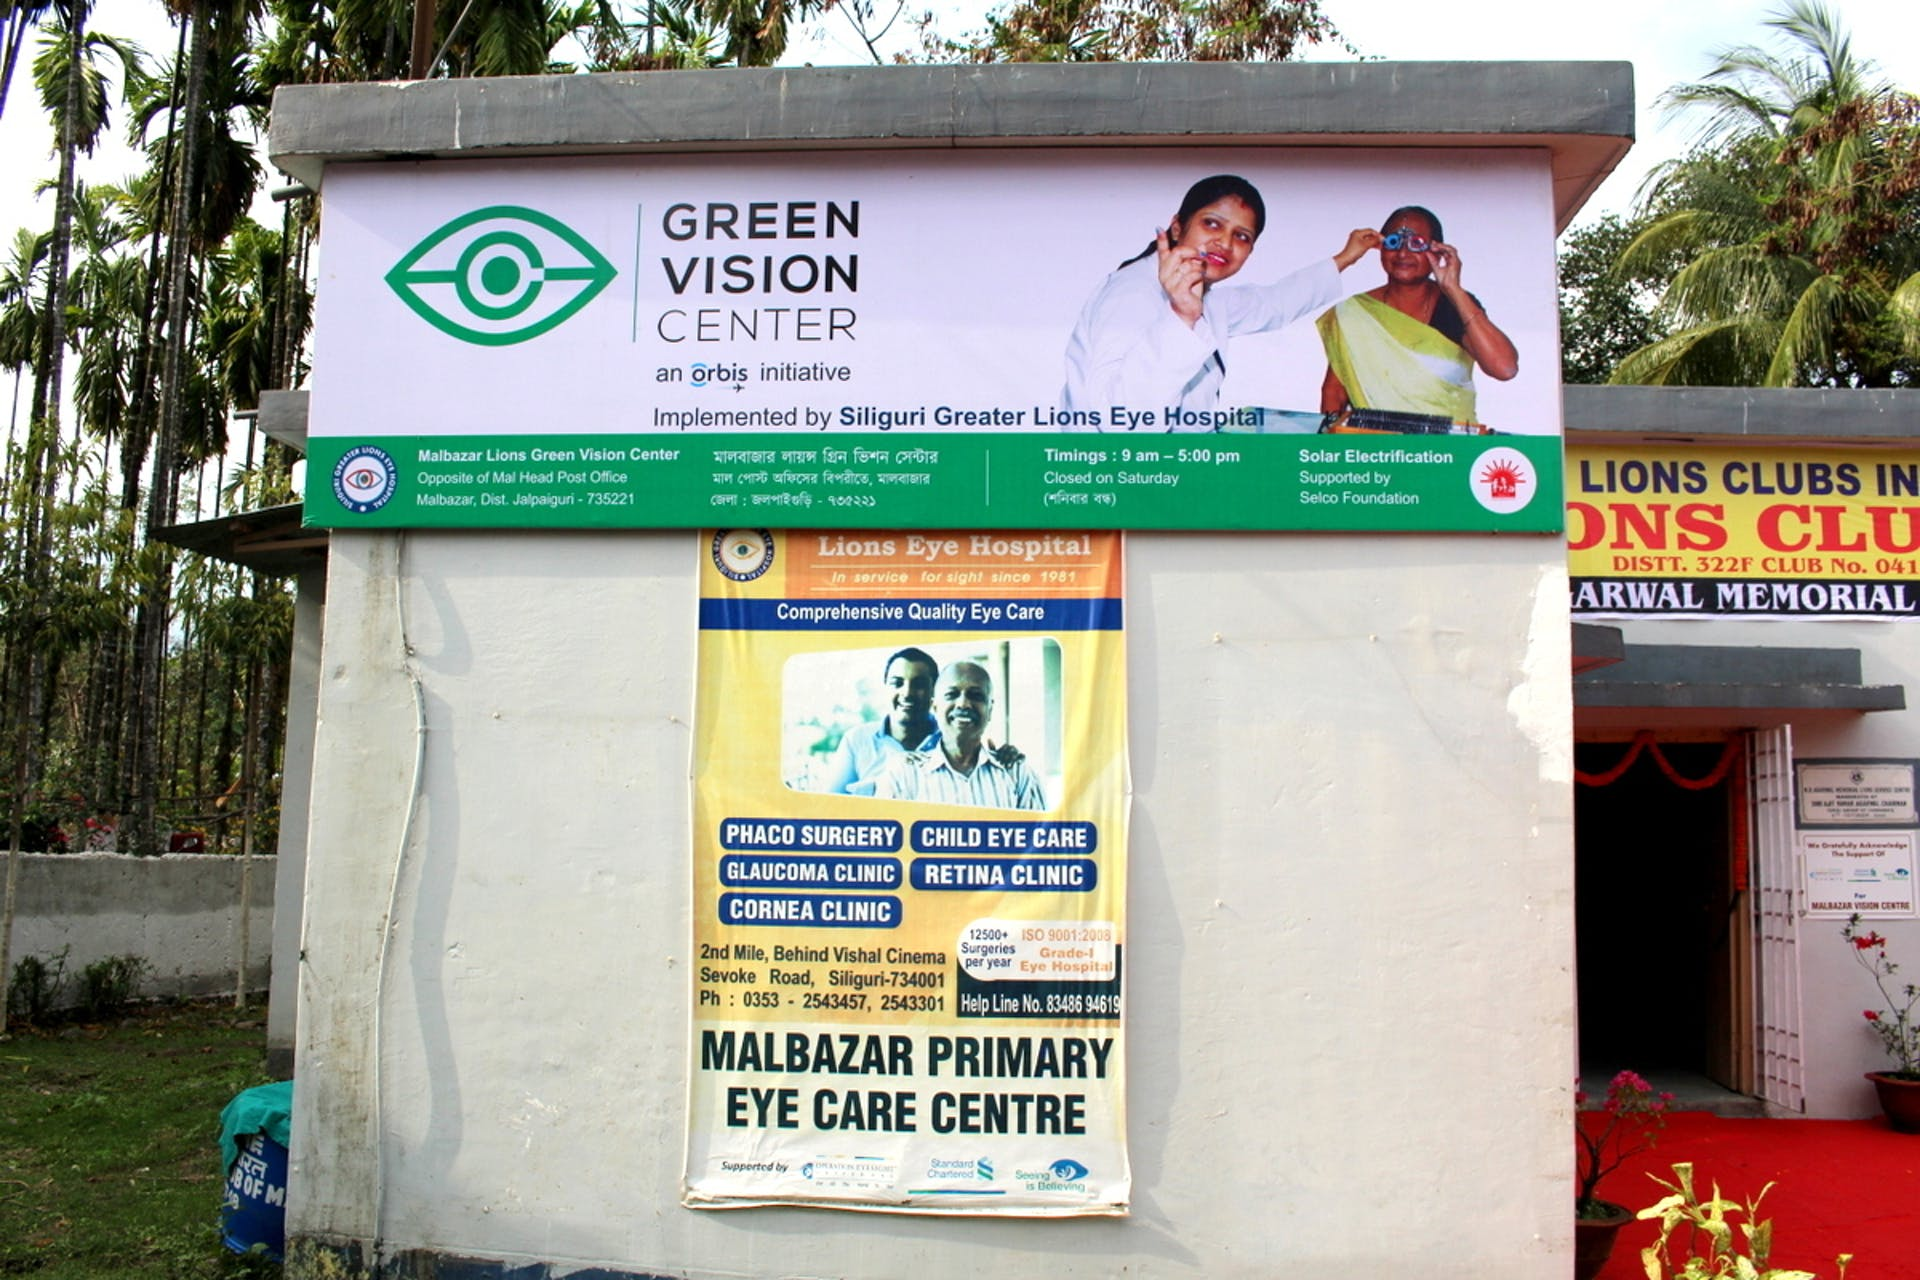 Green Vision Center at Malbazar, Siliguri